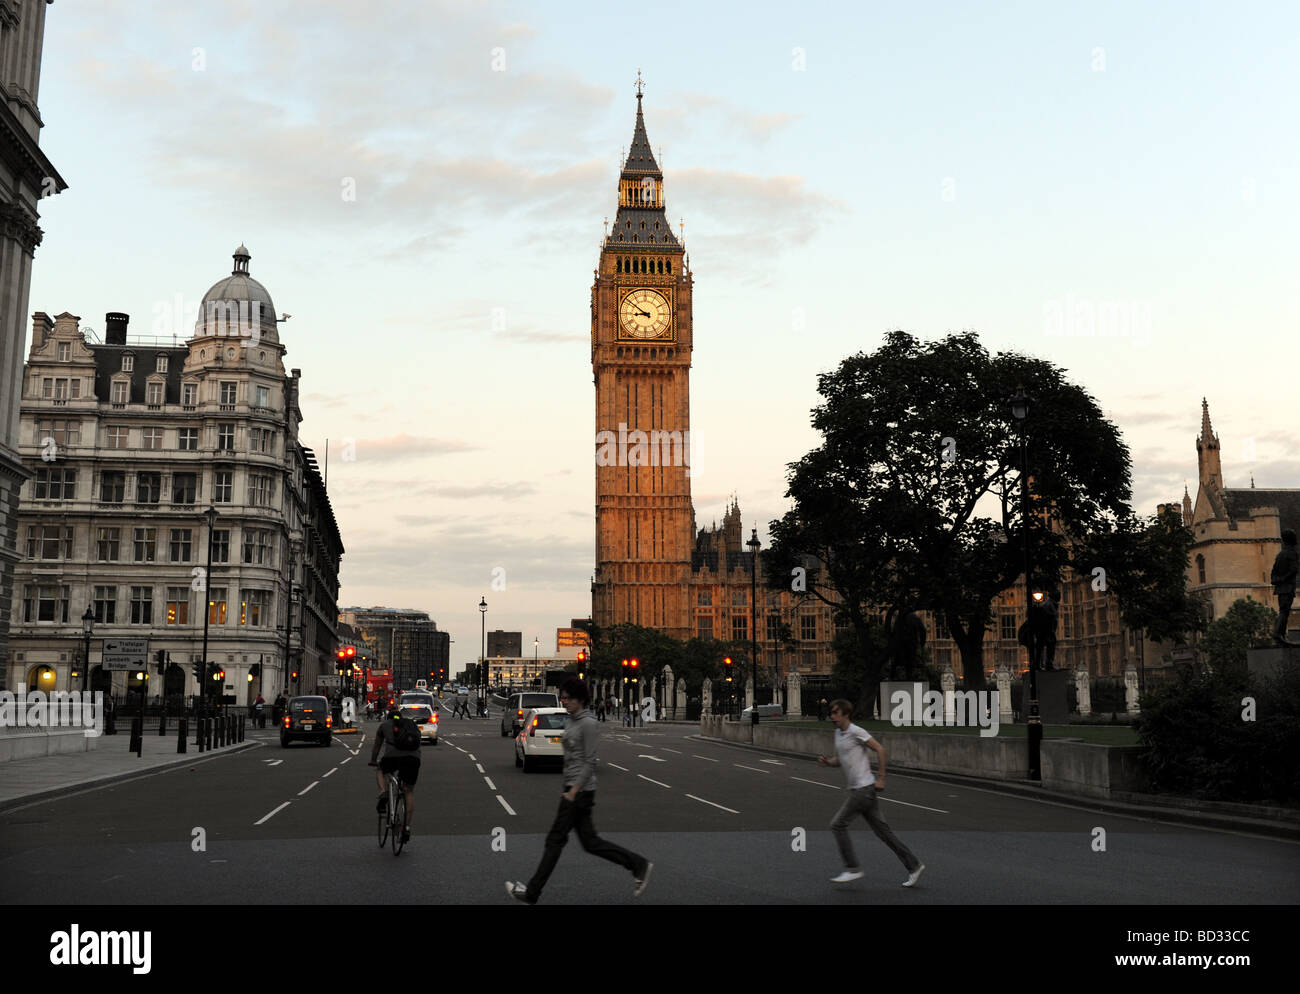 Pedestrians dash across the road by Big Ben in Parliament Square London at dusk - Stock Image